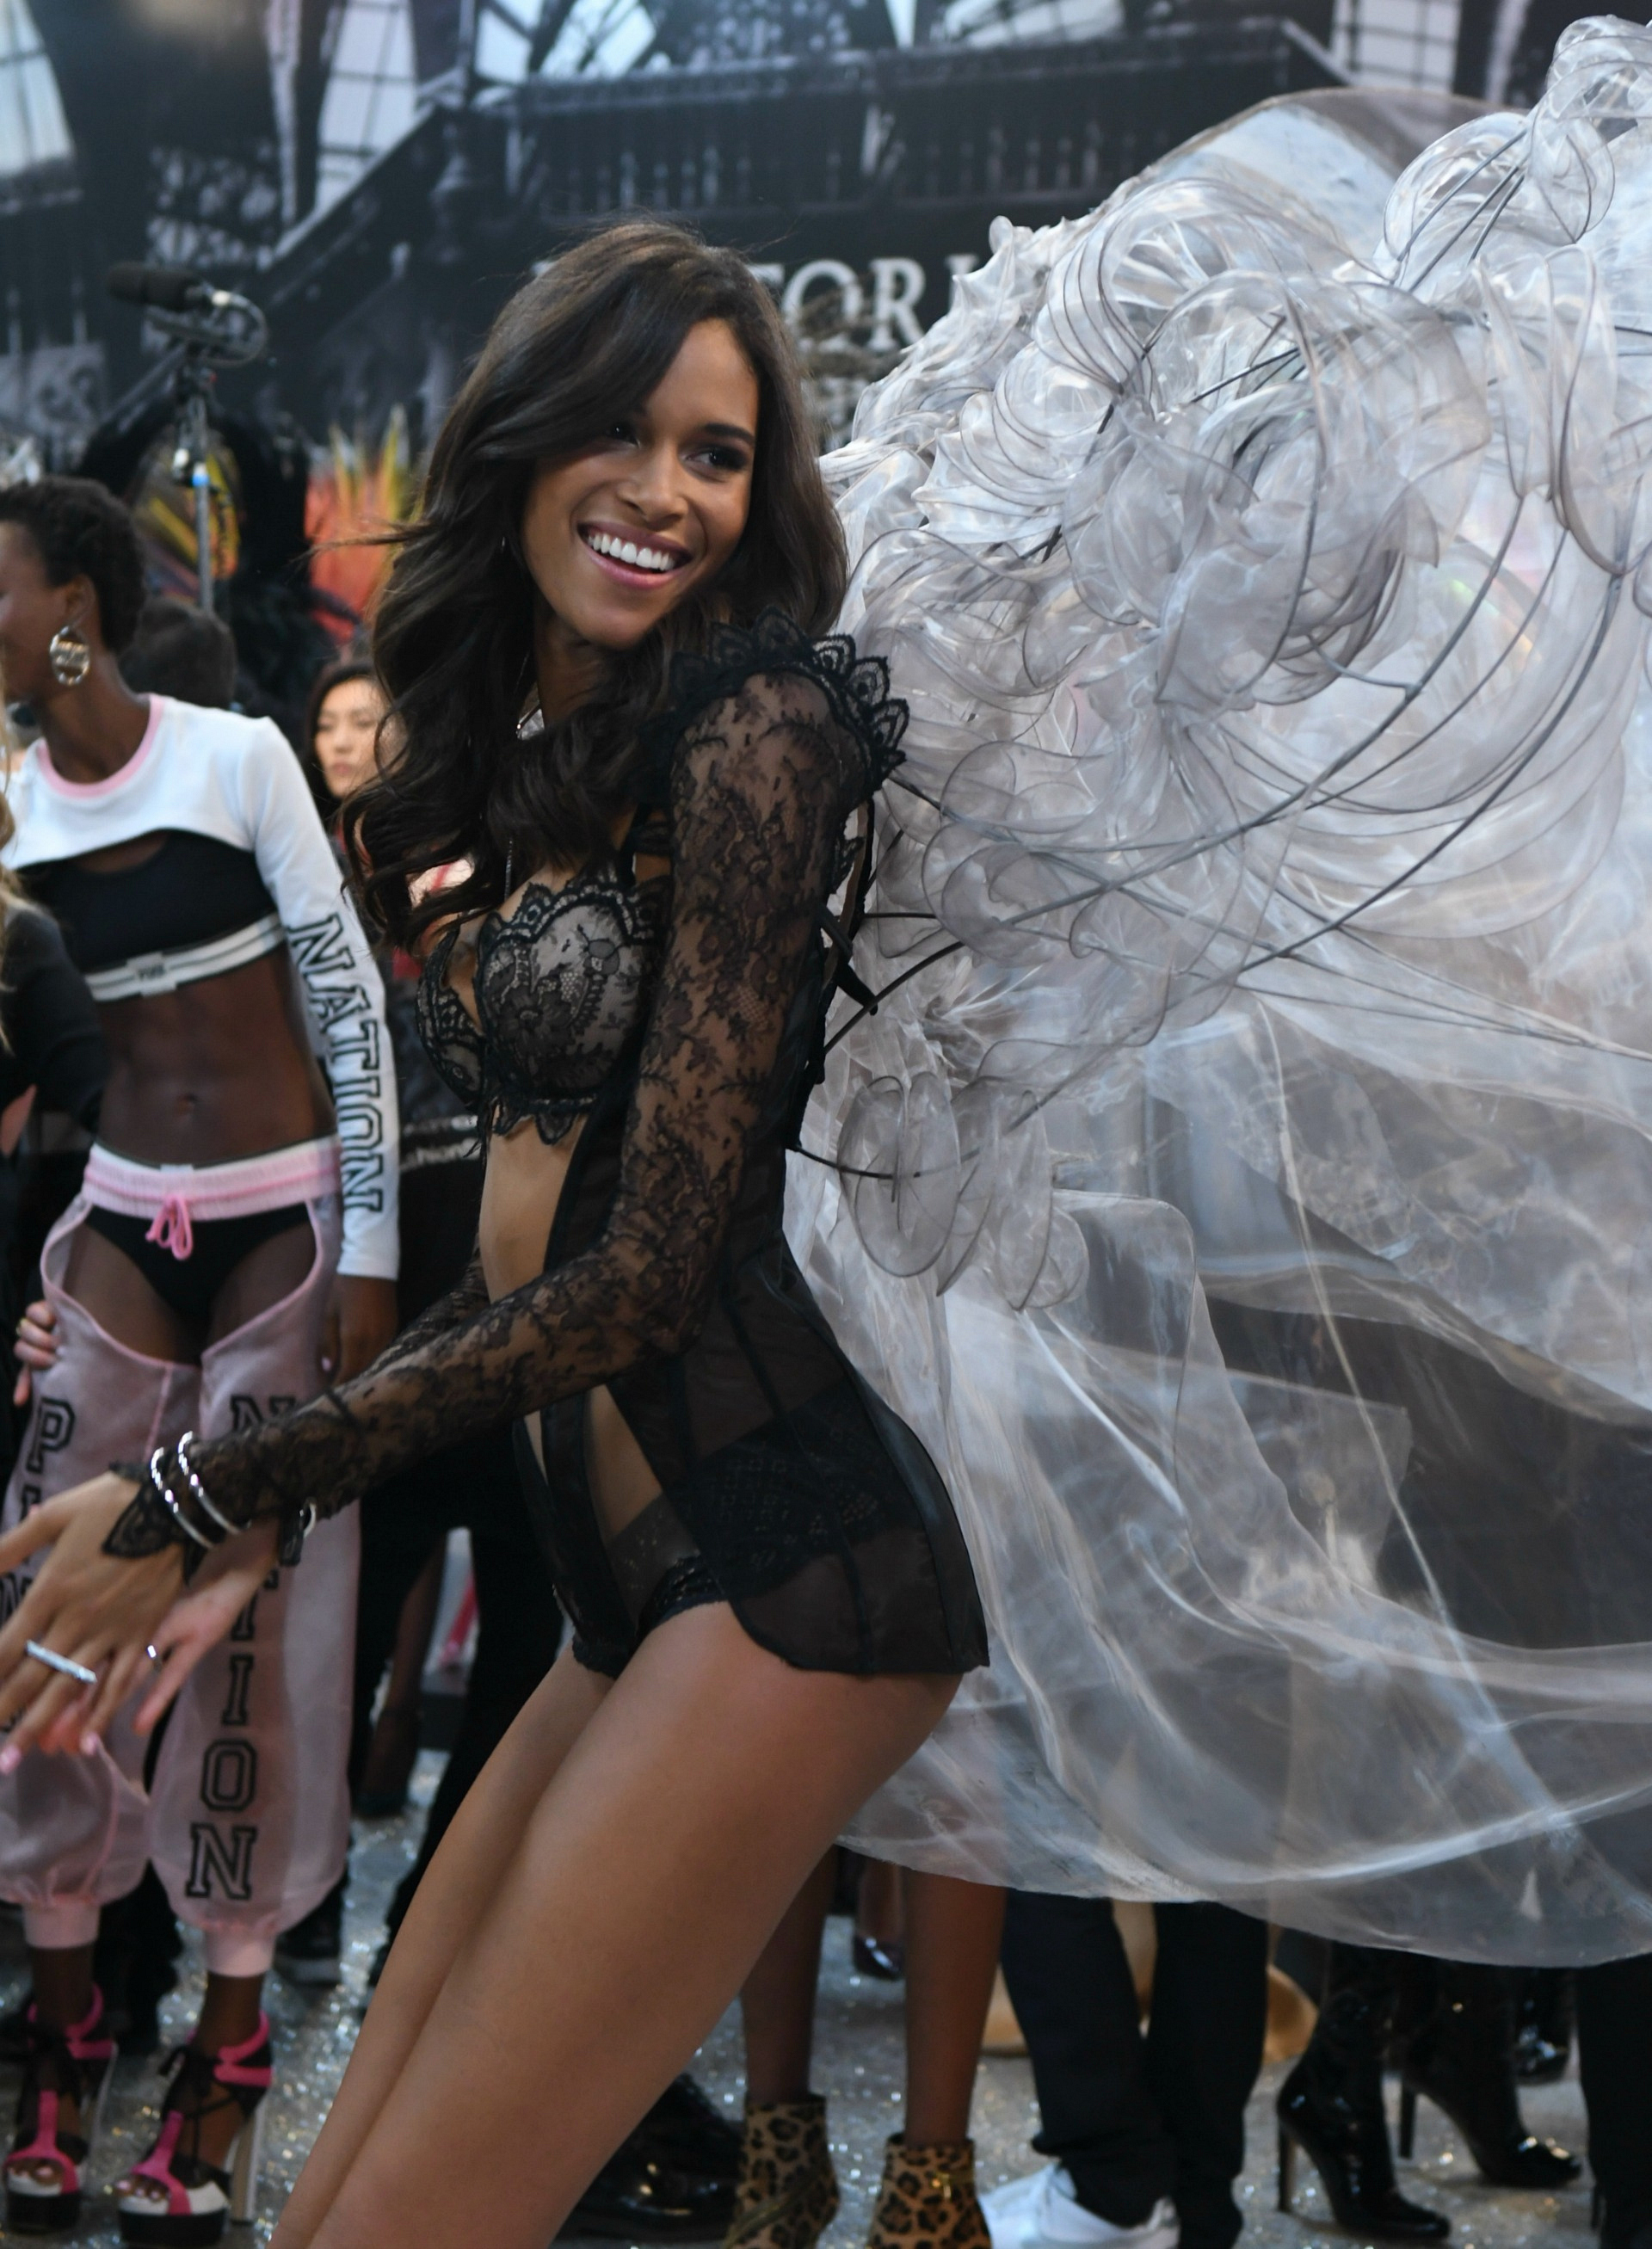 Cindy Bruna shakes her tail feathers backstage.